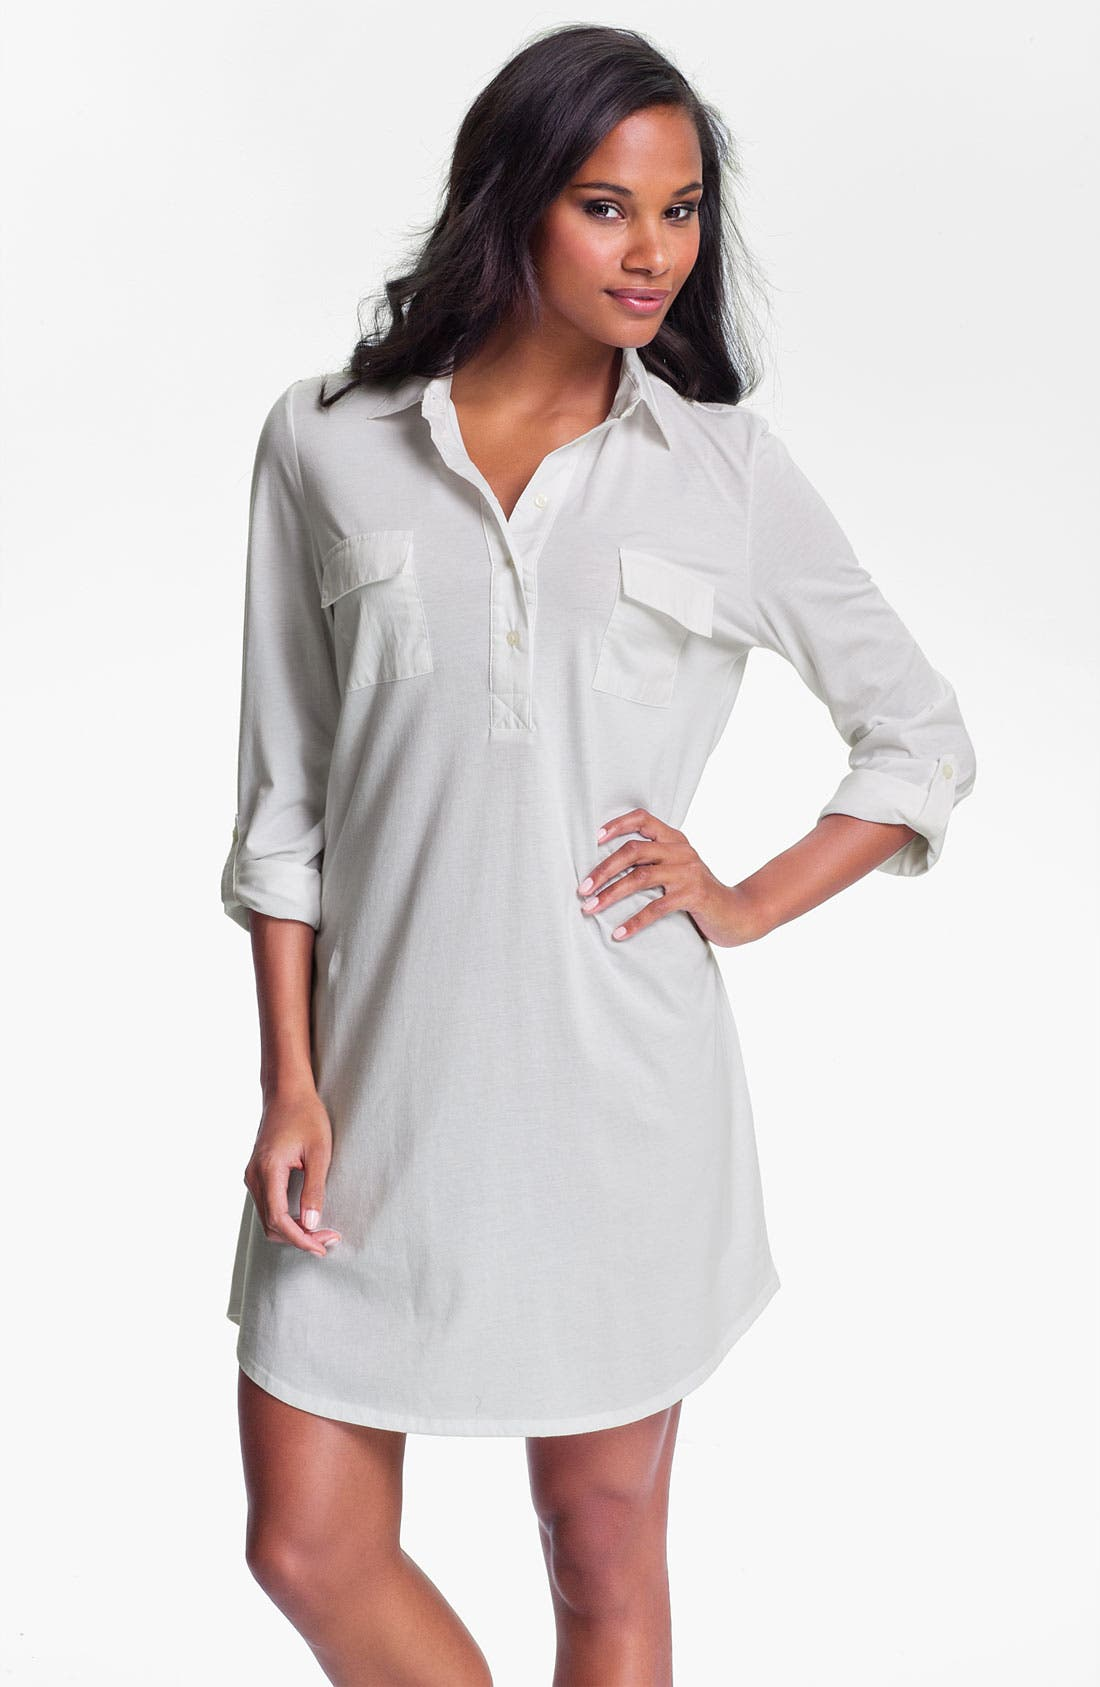 Main Image - Lauren Ralph Lauren Sleepwear Woven Trim Knit Nightshirt